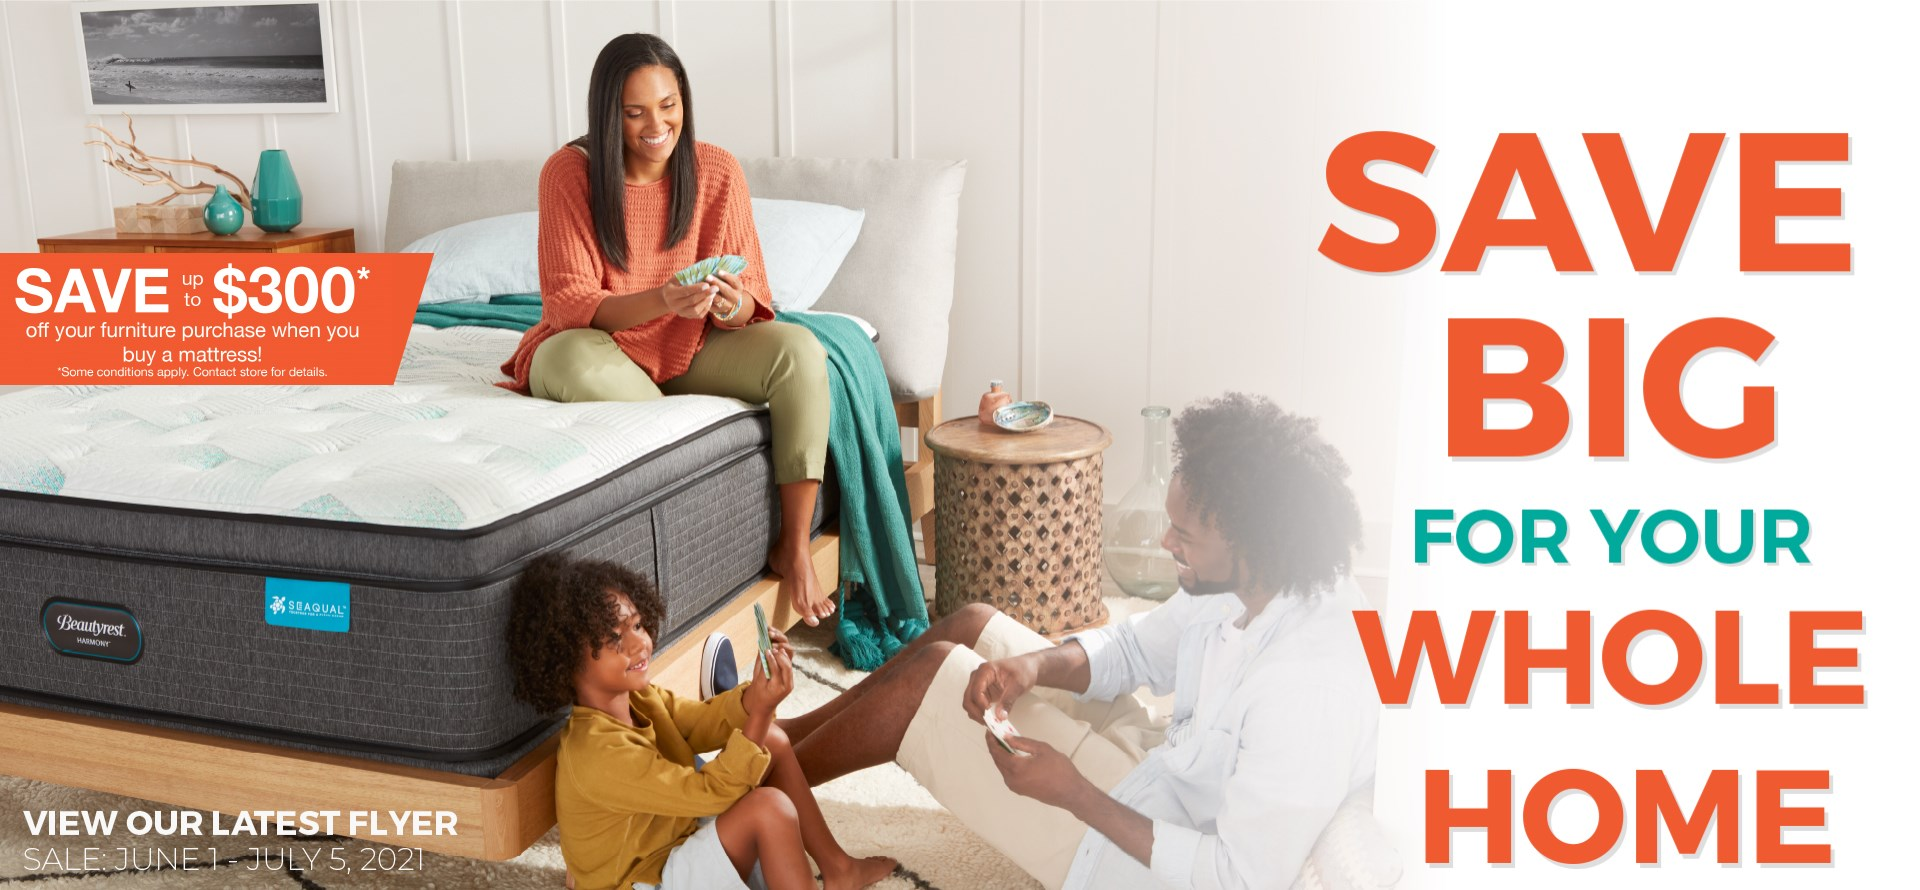 Save Big For Your Whole Home - View the Latest Flyer